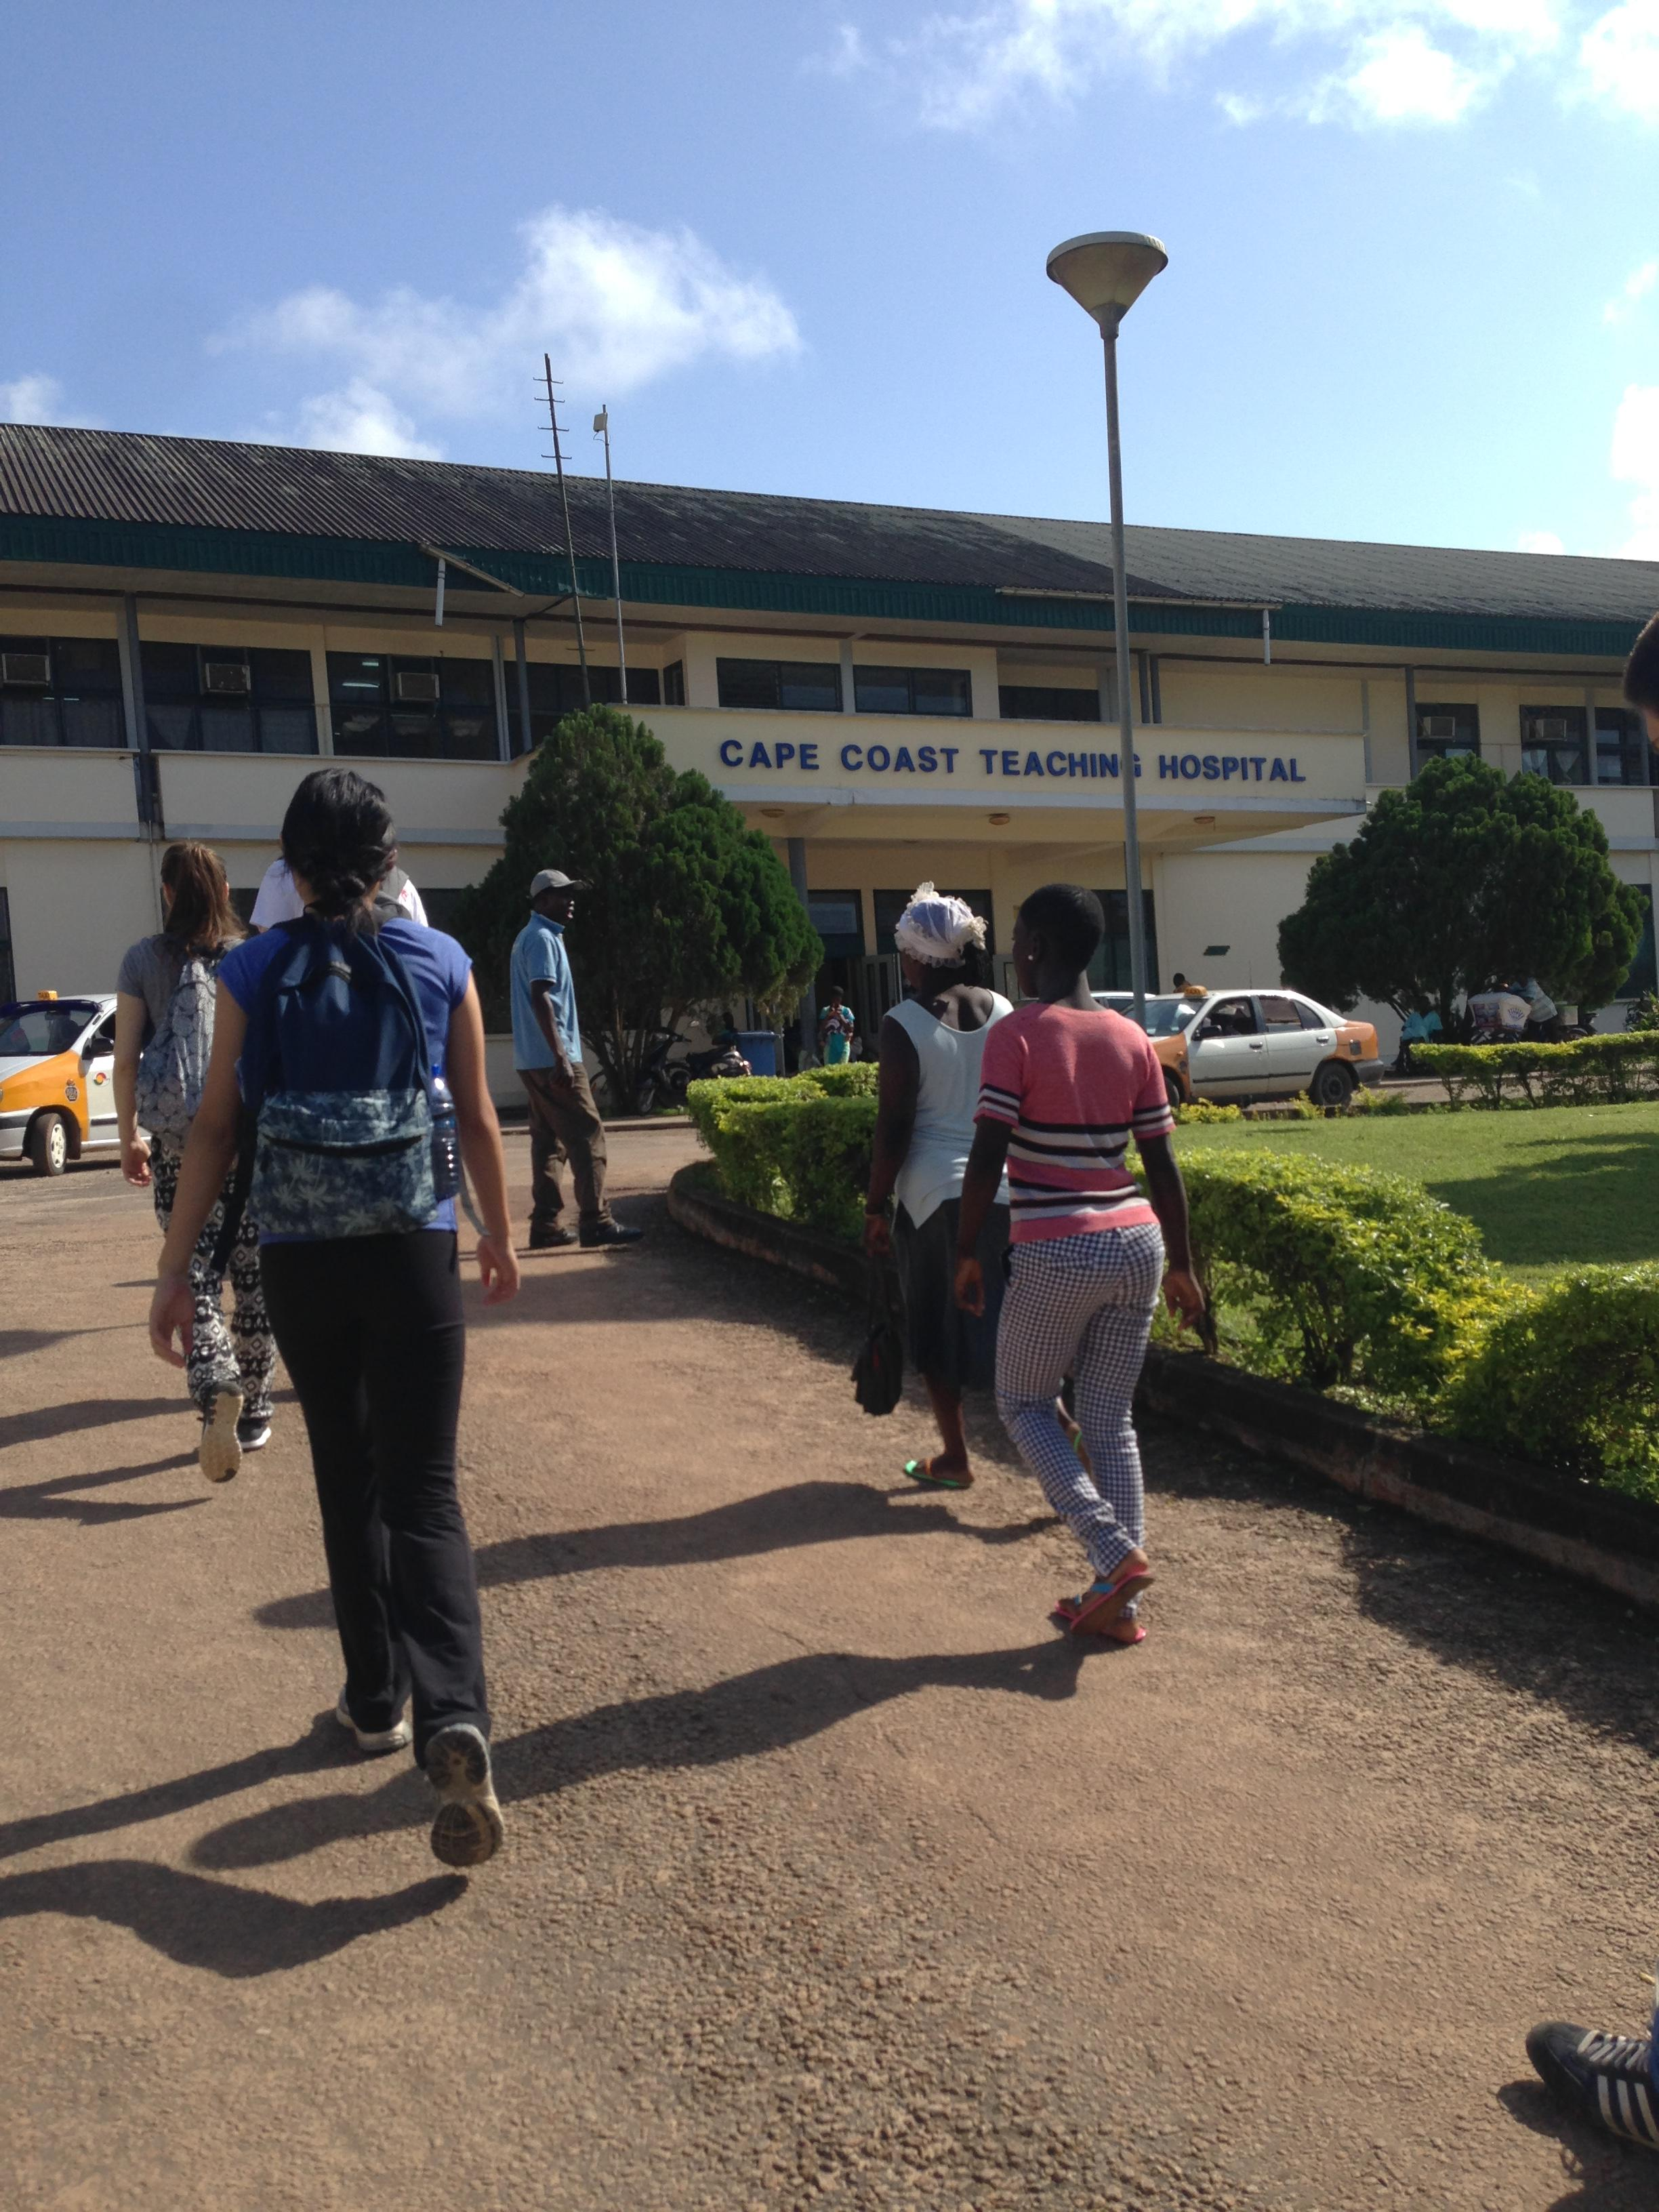 Local people visit the teaching hospital in Cape Coast, where many students do Nursing internships in Ghana with Projects Abroad.